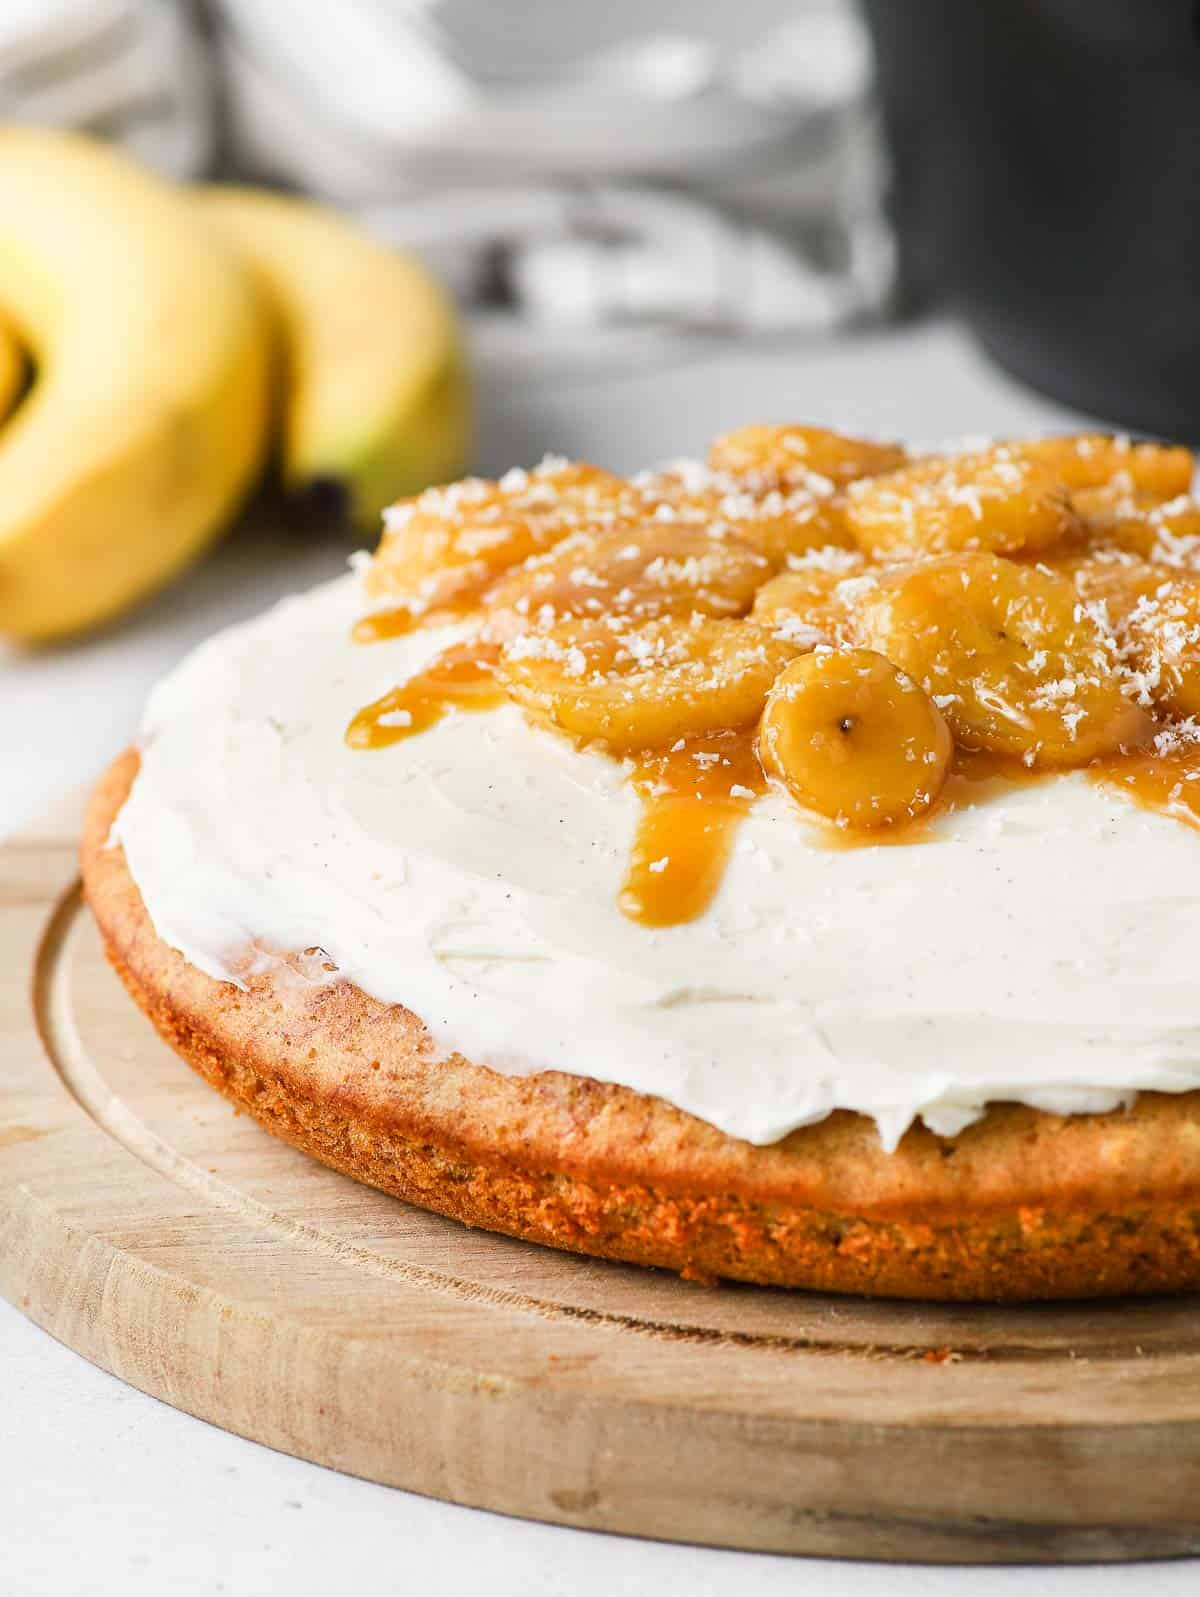 Close up on the cream cheese frosting and caramelised bananas.